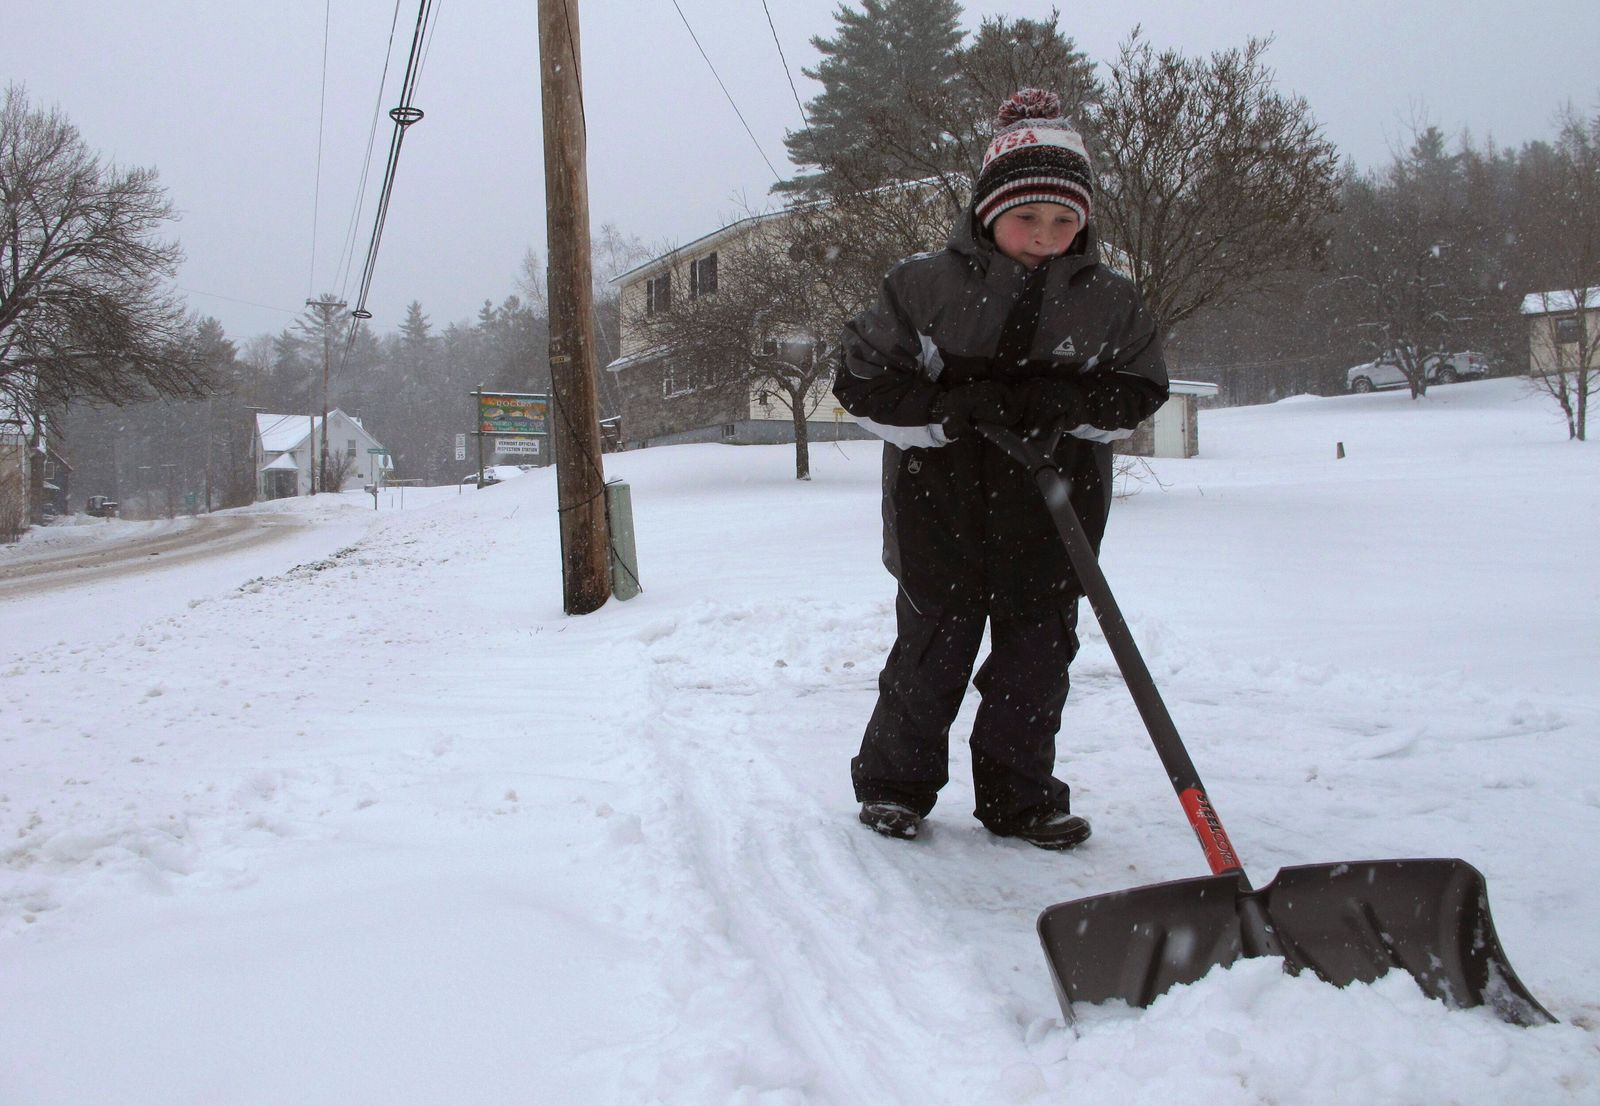 Kaiden Rogers shovels snow from his driveway on Tuesday, Nov. 12, 2019 in Marshfield, Vt.  A wintry mix has swept into northern New England, with hundreds of schools closed or delayed in Vermont due to snow, and slick conditions in New Hampshire and Maine.  (AP Photo/Lisa Rathke)